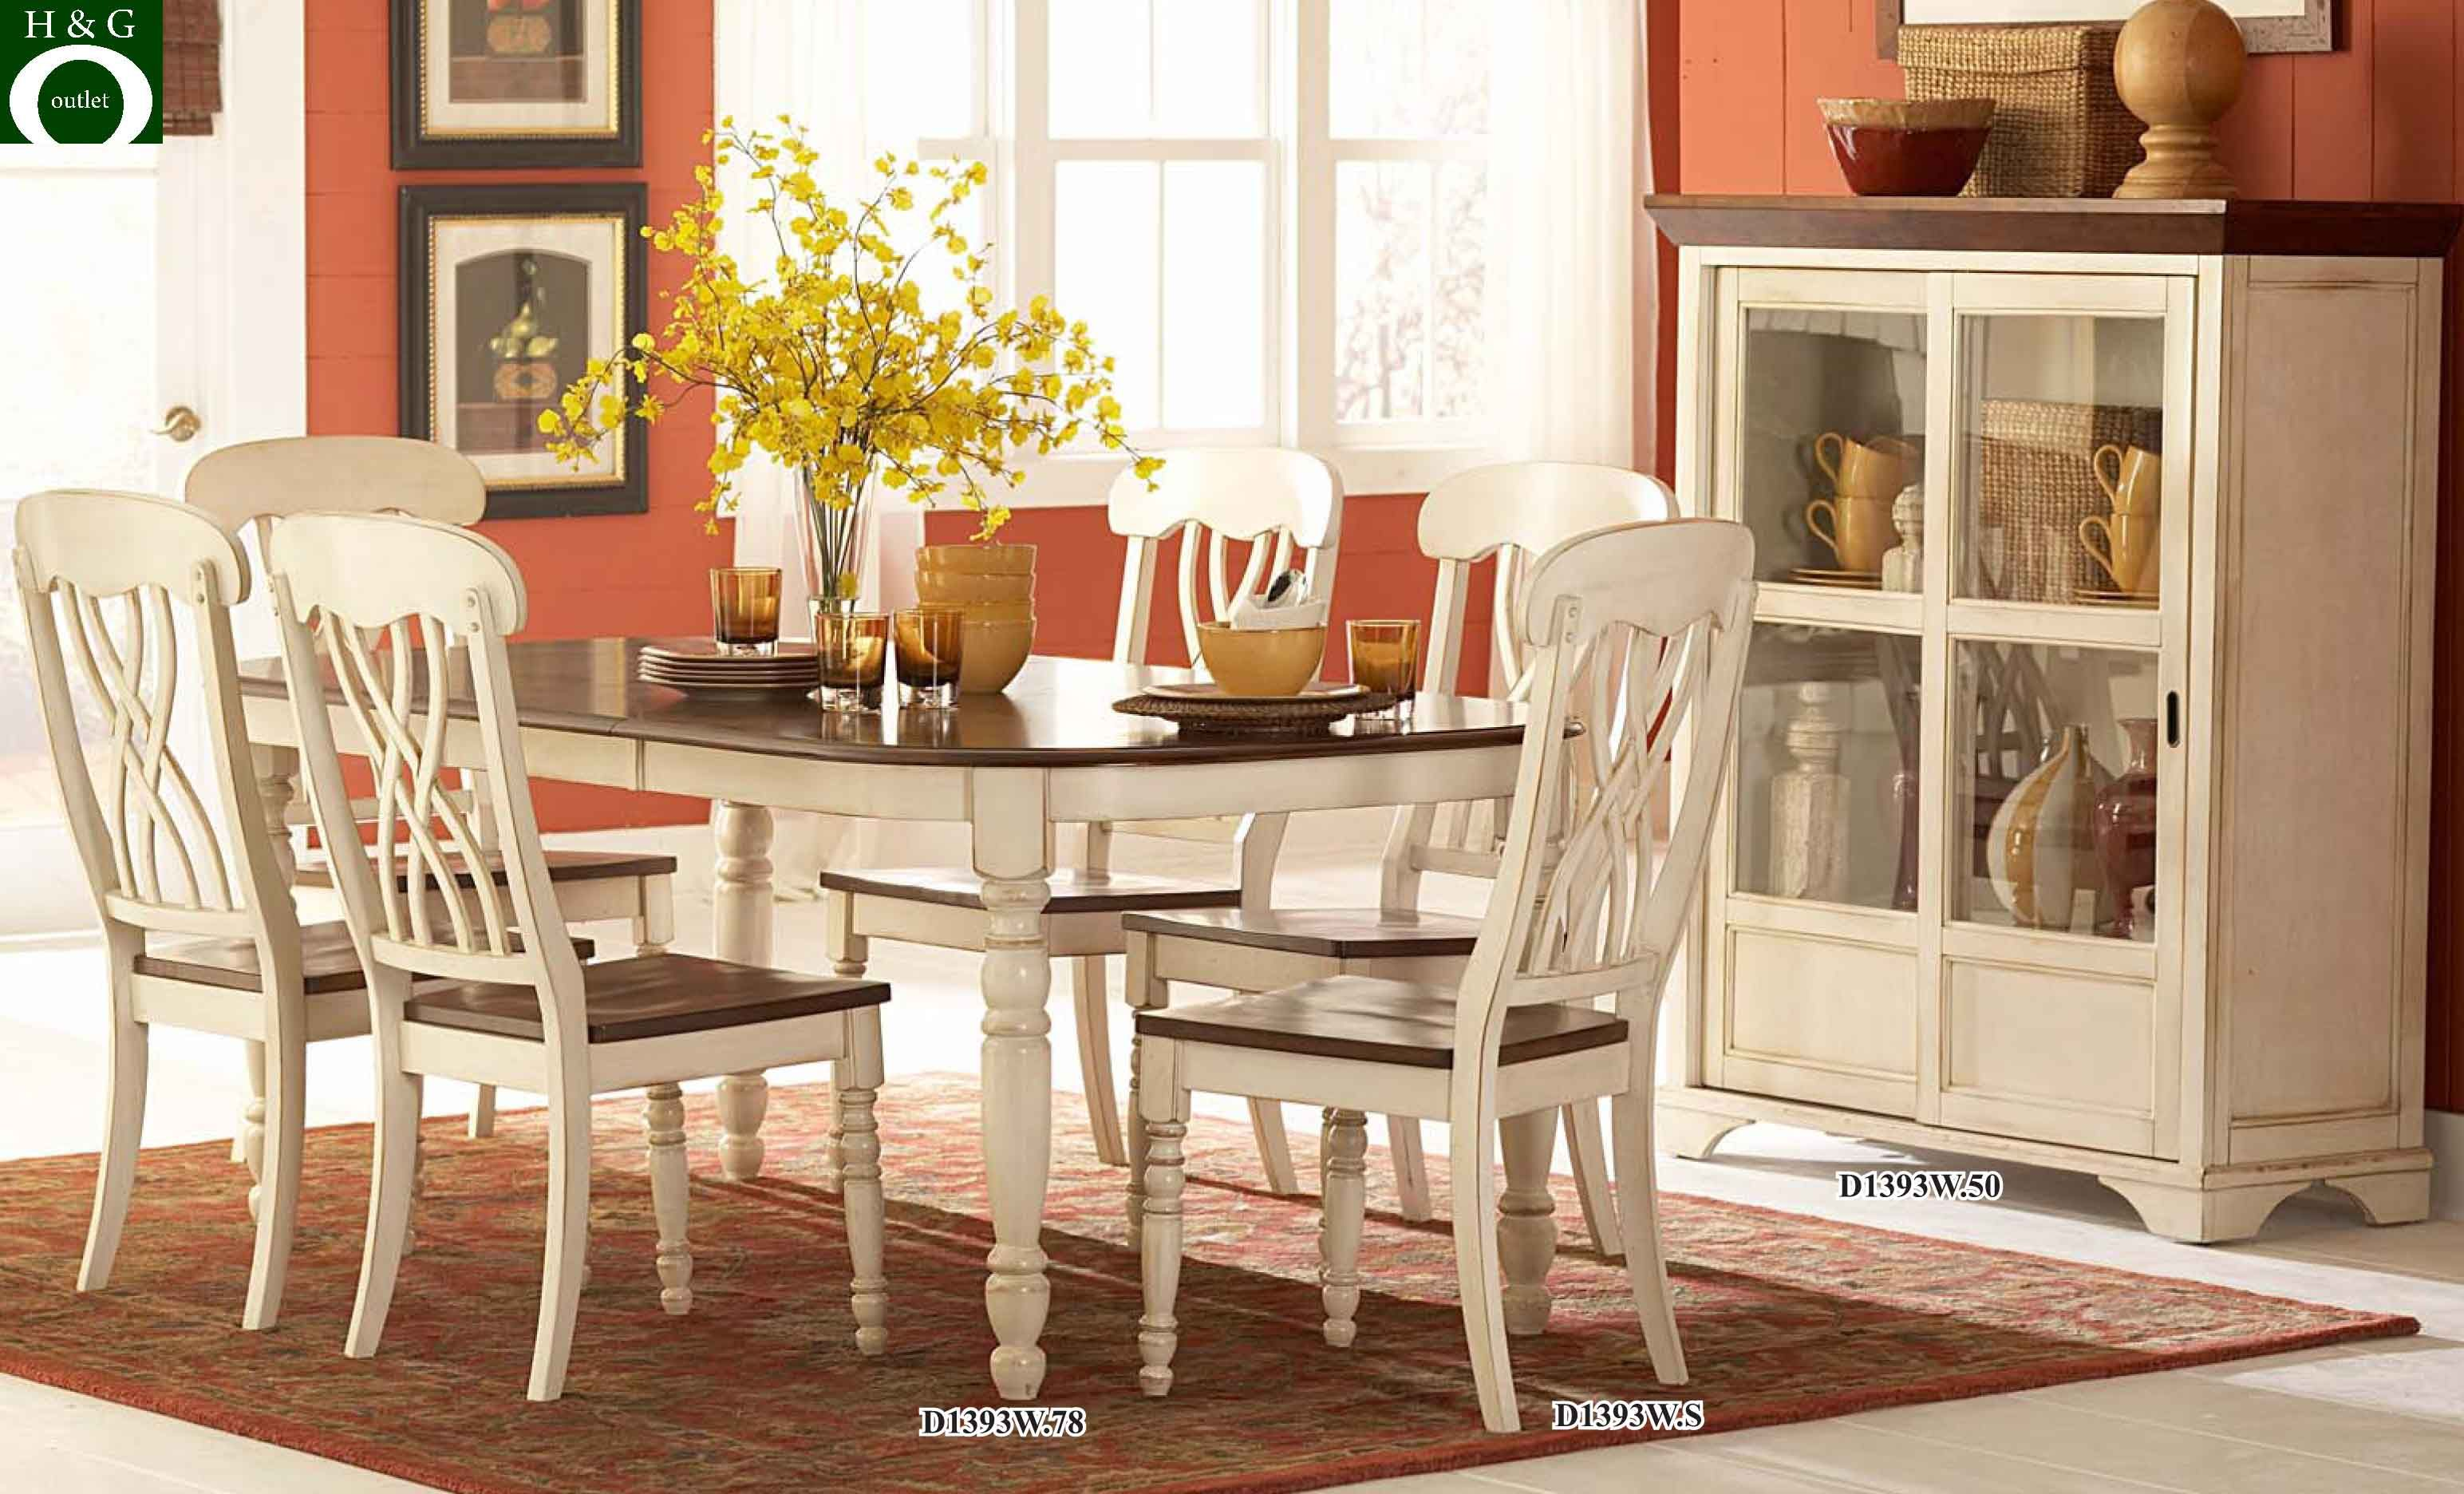 Ohana Dining Table by Home Elegance in